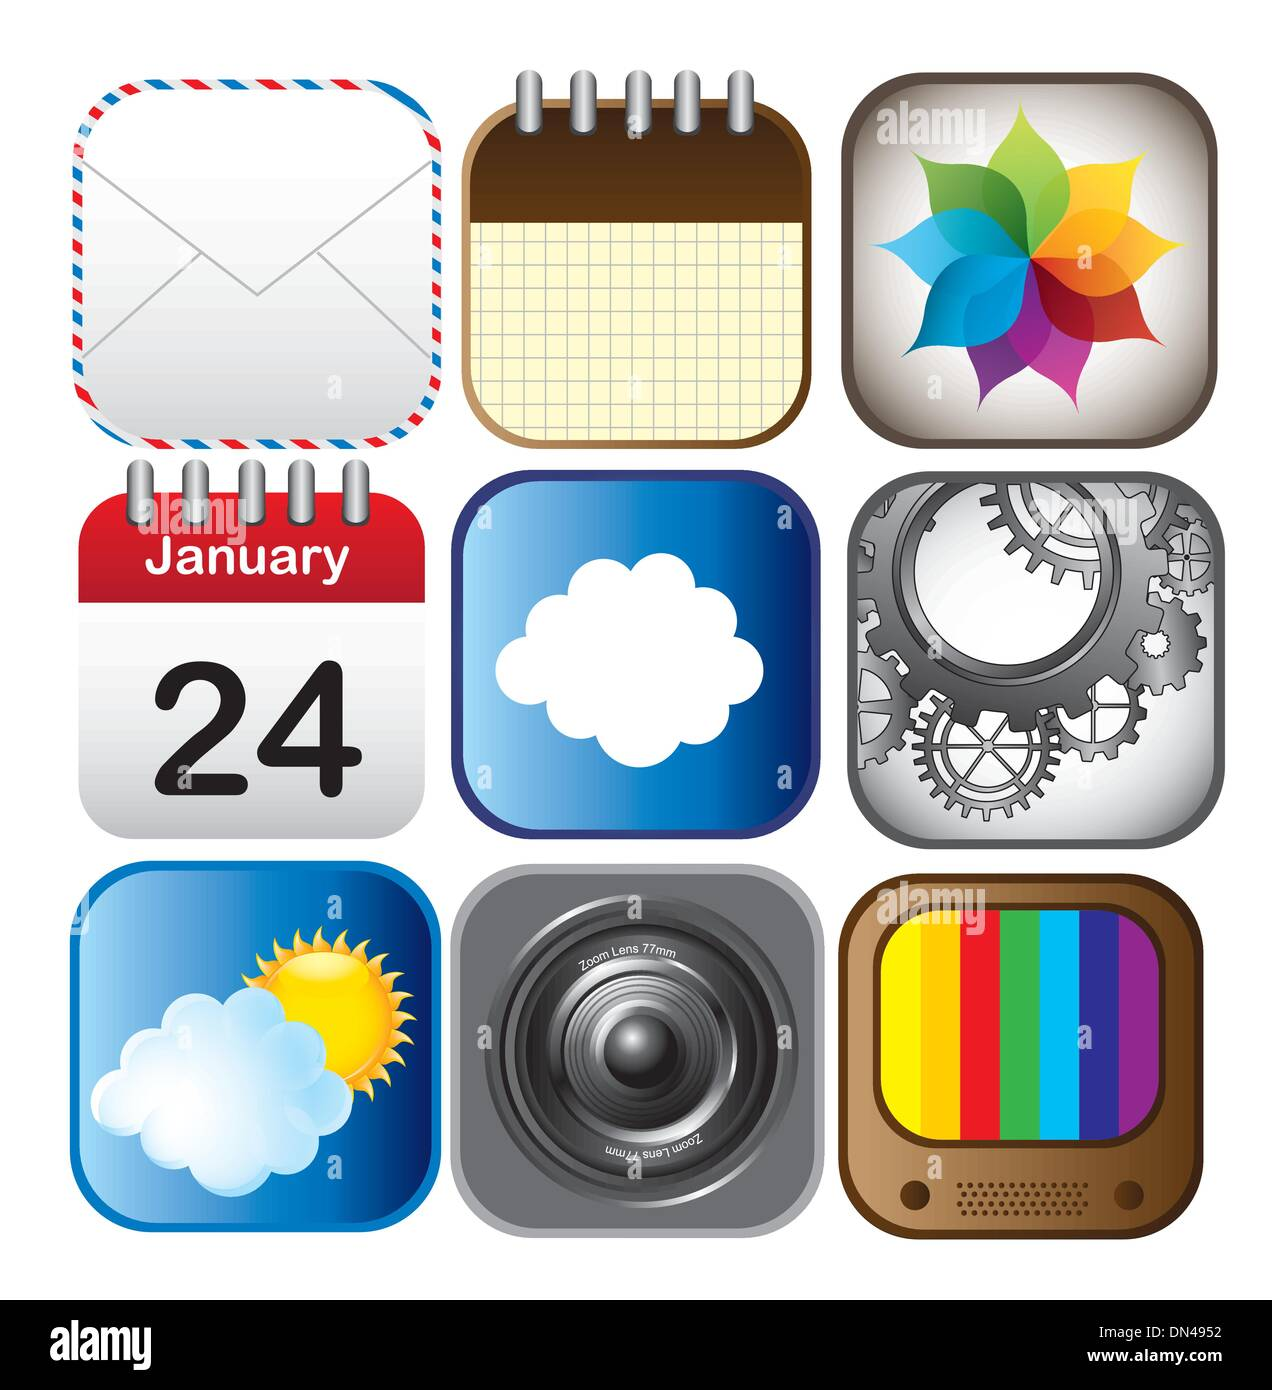 Applications icons - Stock Image